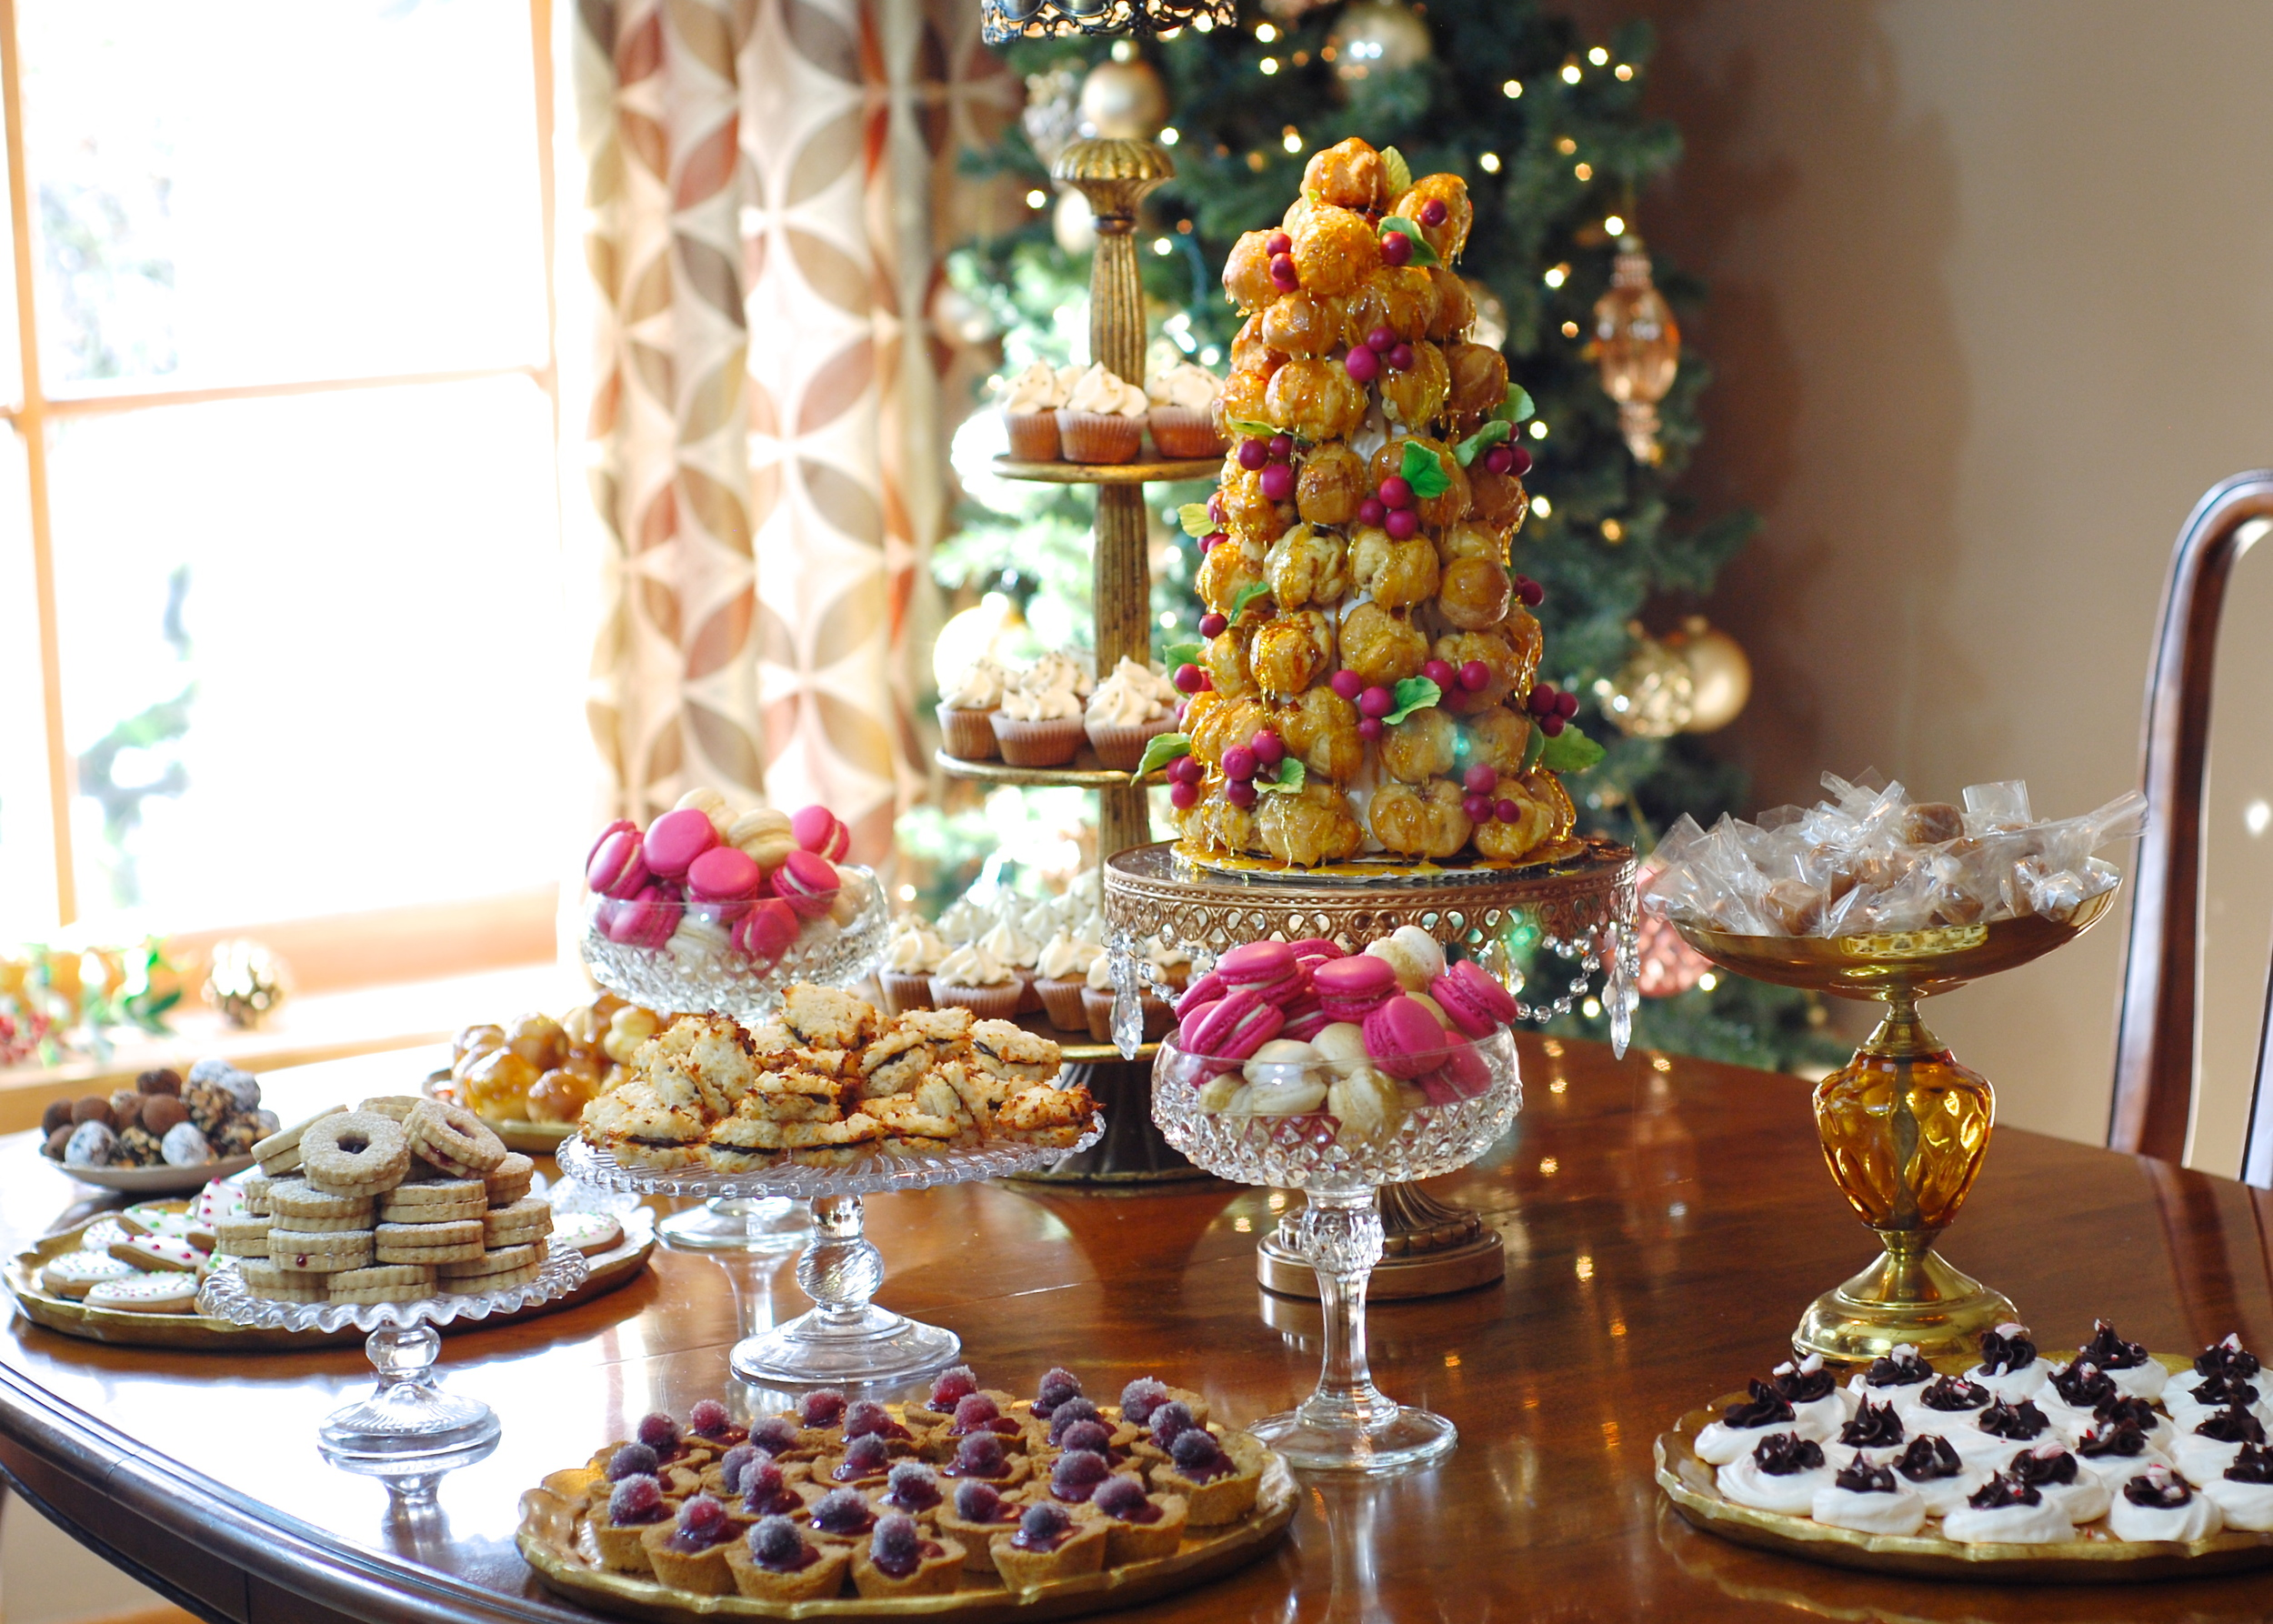 The Dessert Buffet: Croquembouche, Macarons, Homemade Caramels, Peppermint Meringues filled with Chocolate Ganache, Cranberry Hazelnut Tartlets, Macaroon Sandwich Bites filled with Chocolate Ganache, Raspberry Linzer Cookies, Gingerbread Cookies, Cream Puffs & Pumpkin Spice Cupcakes.